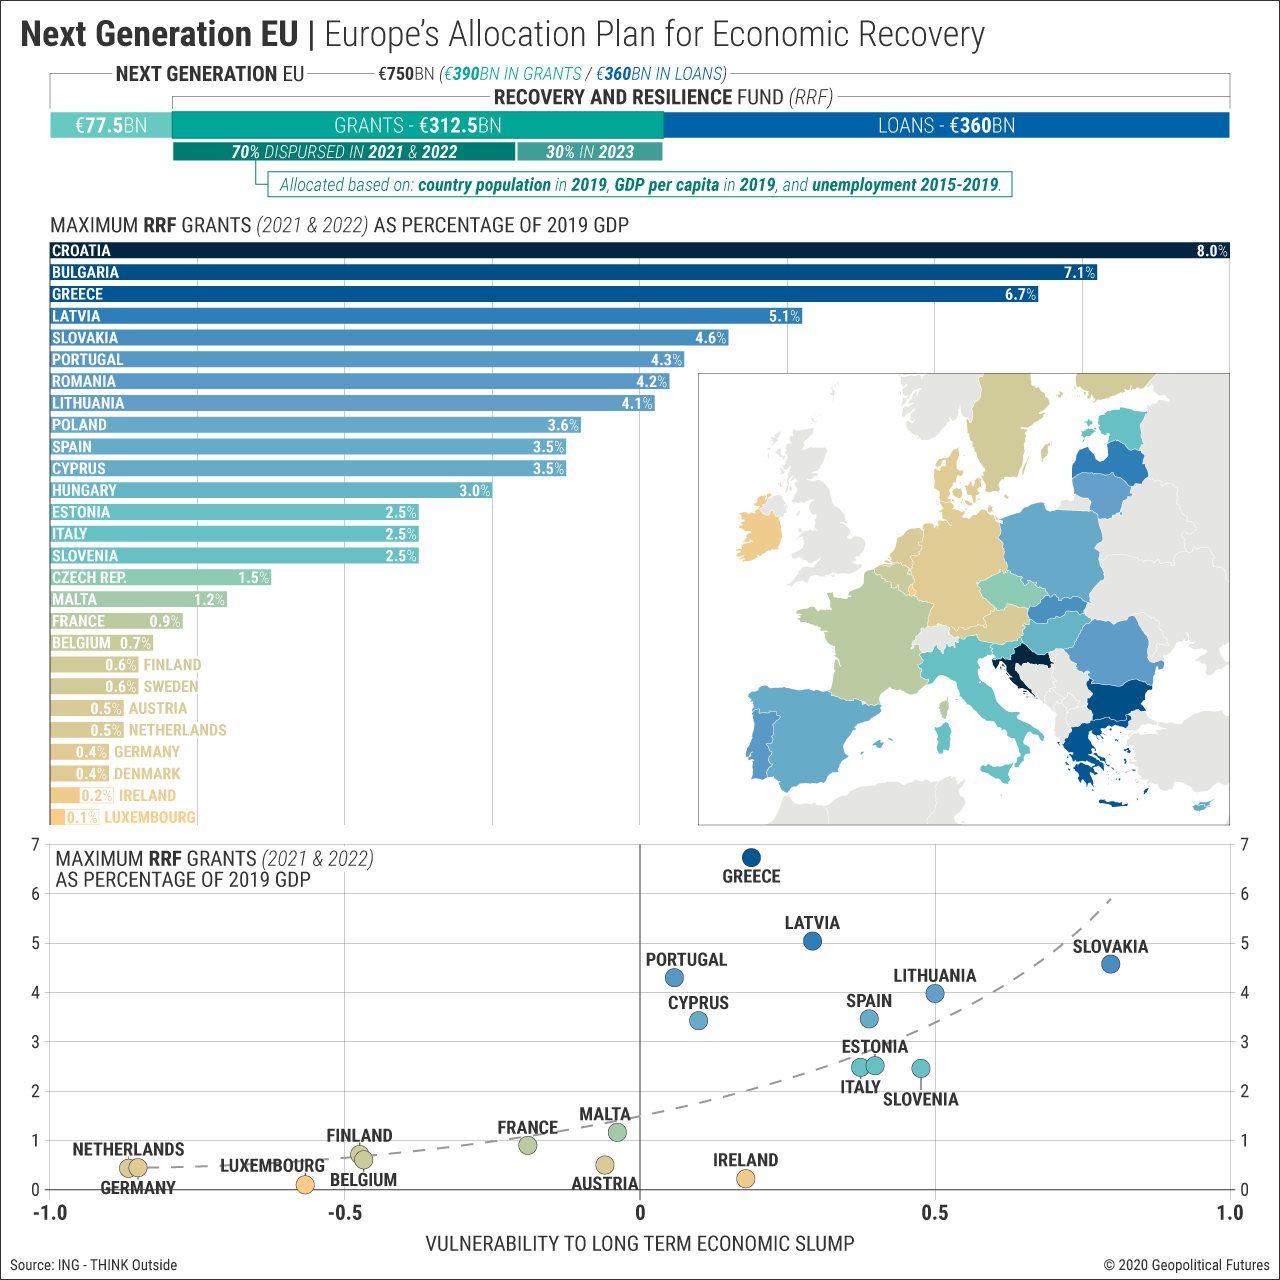 Next Generation EU | Europe's Allocation Plan for Economic Recovery